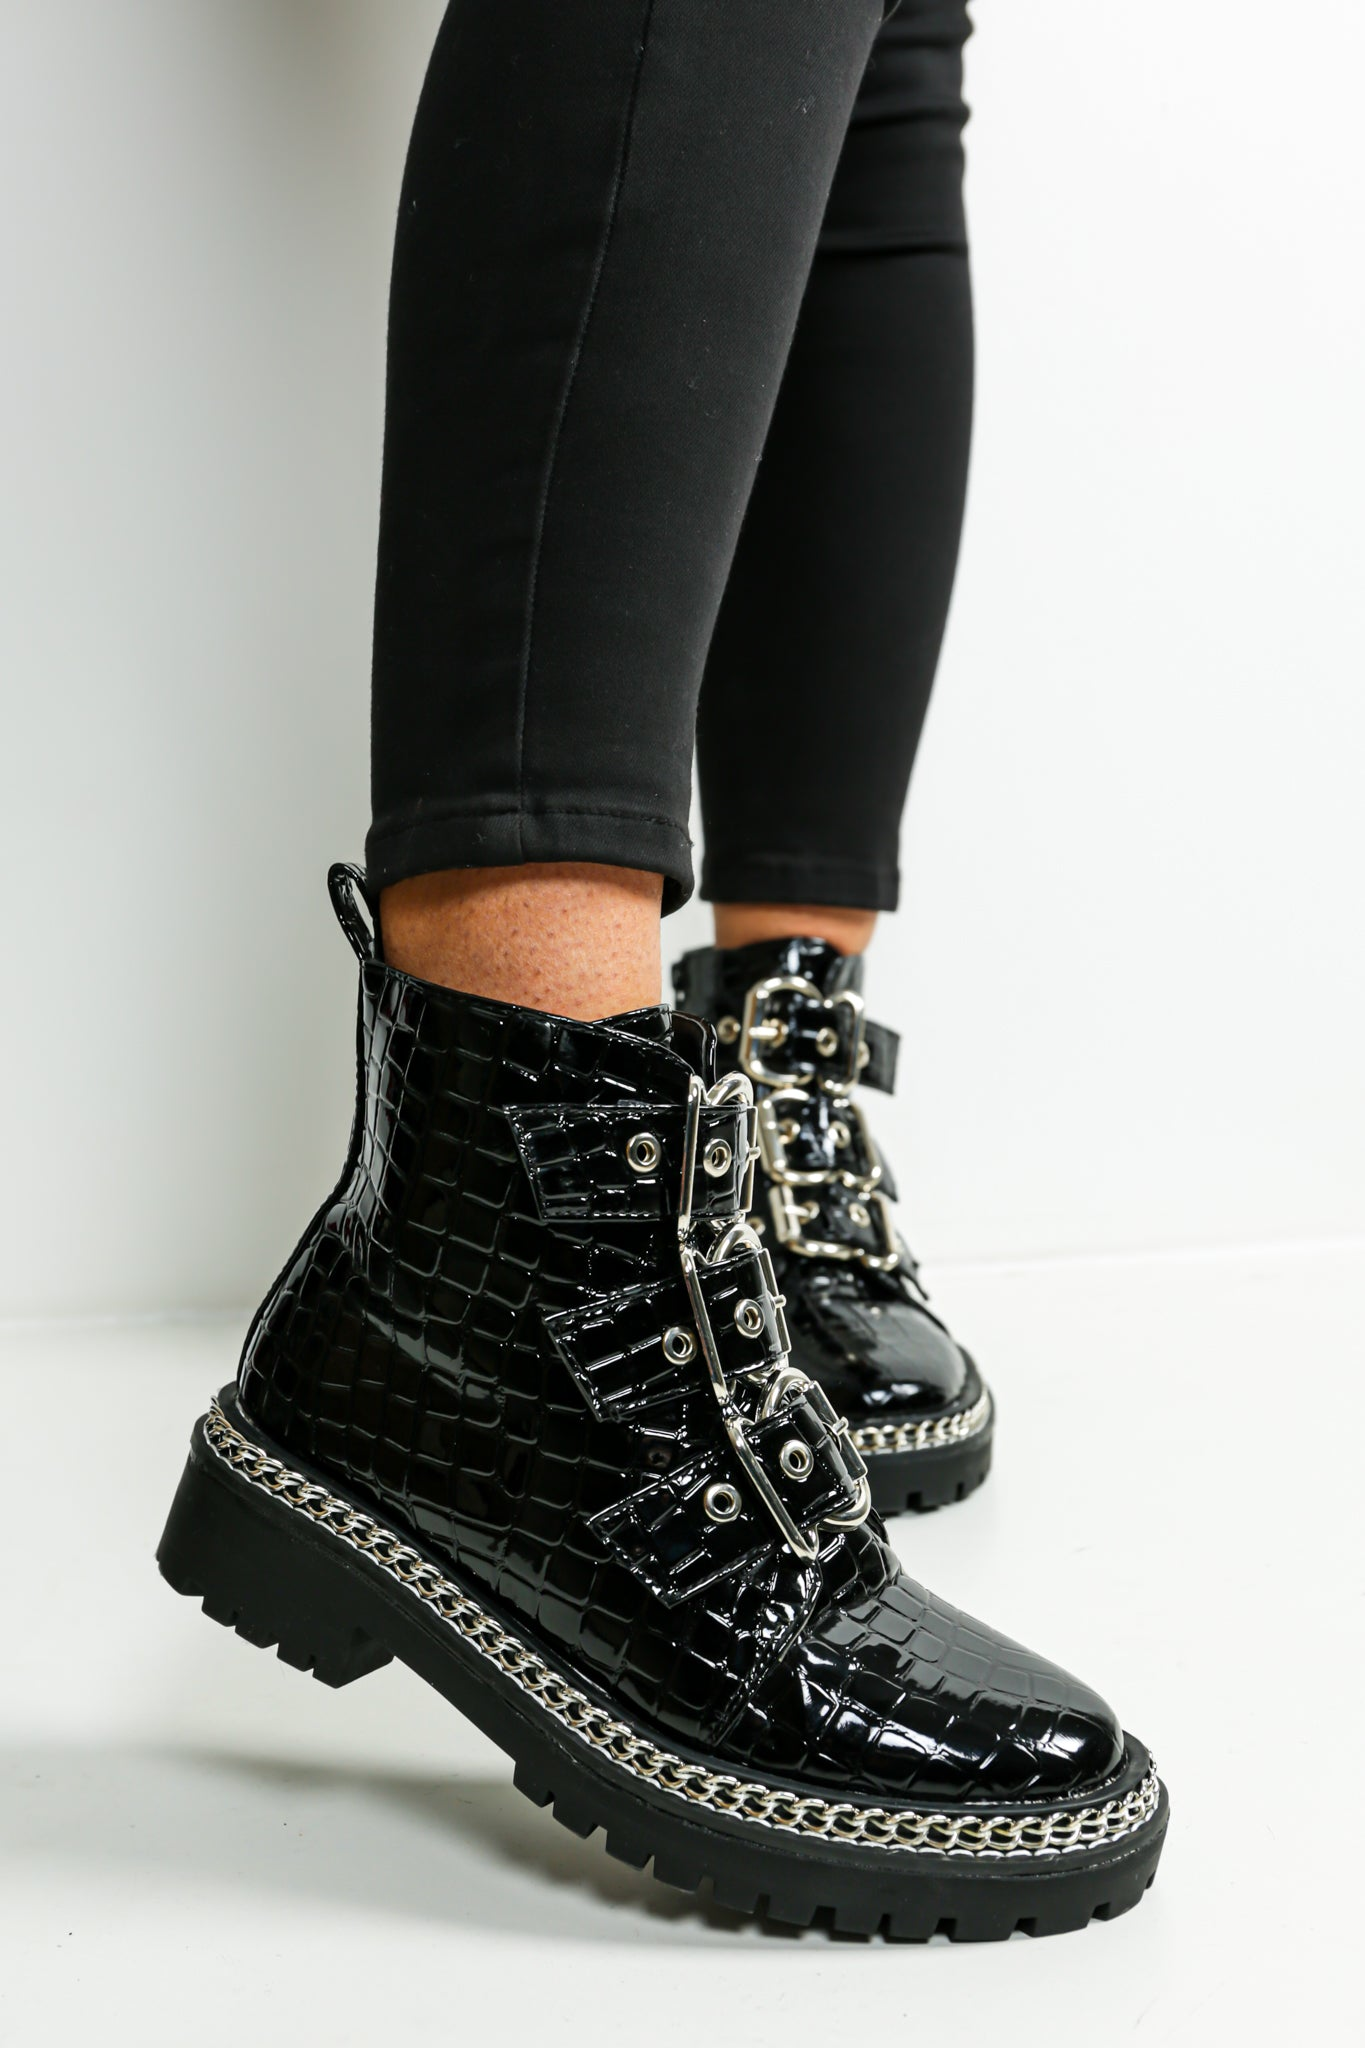 Croc And Roll - Boots In BLACK/CROC